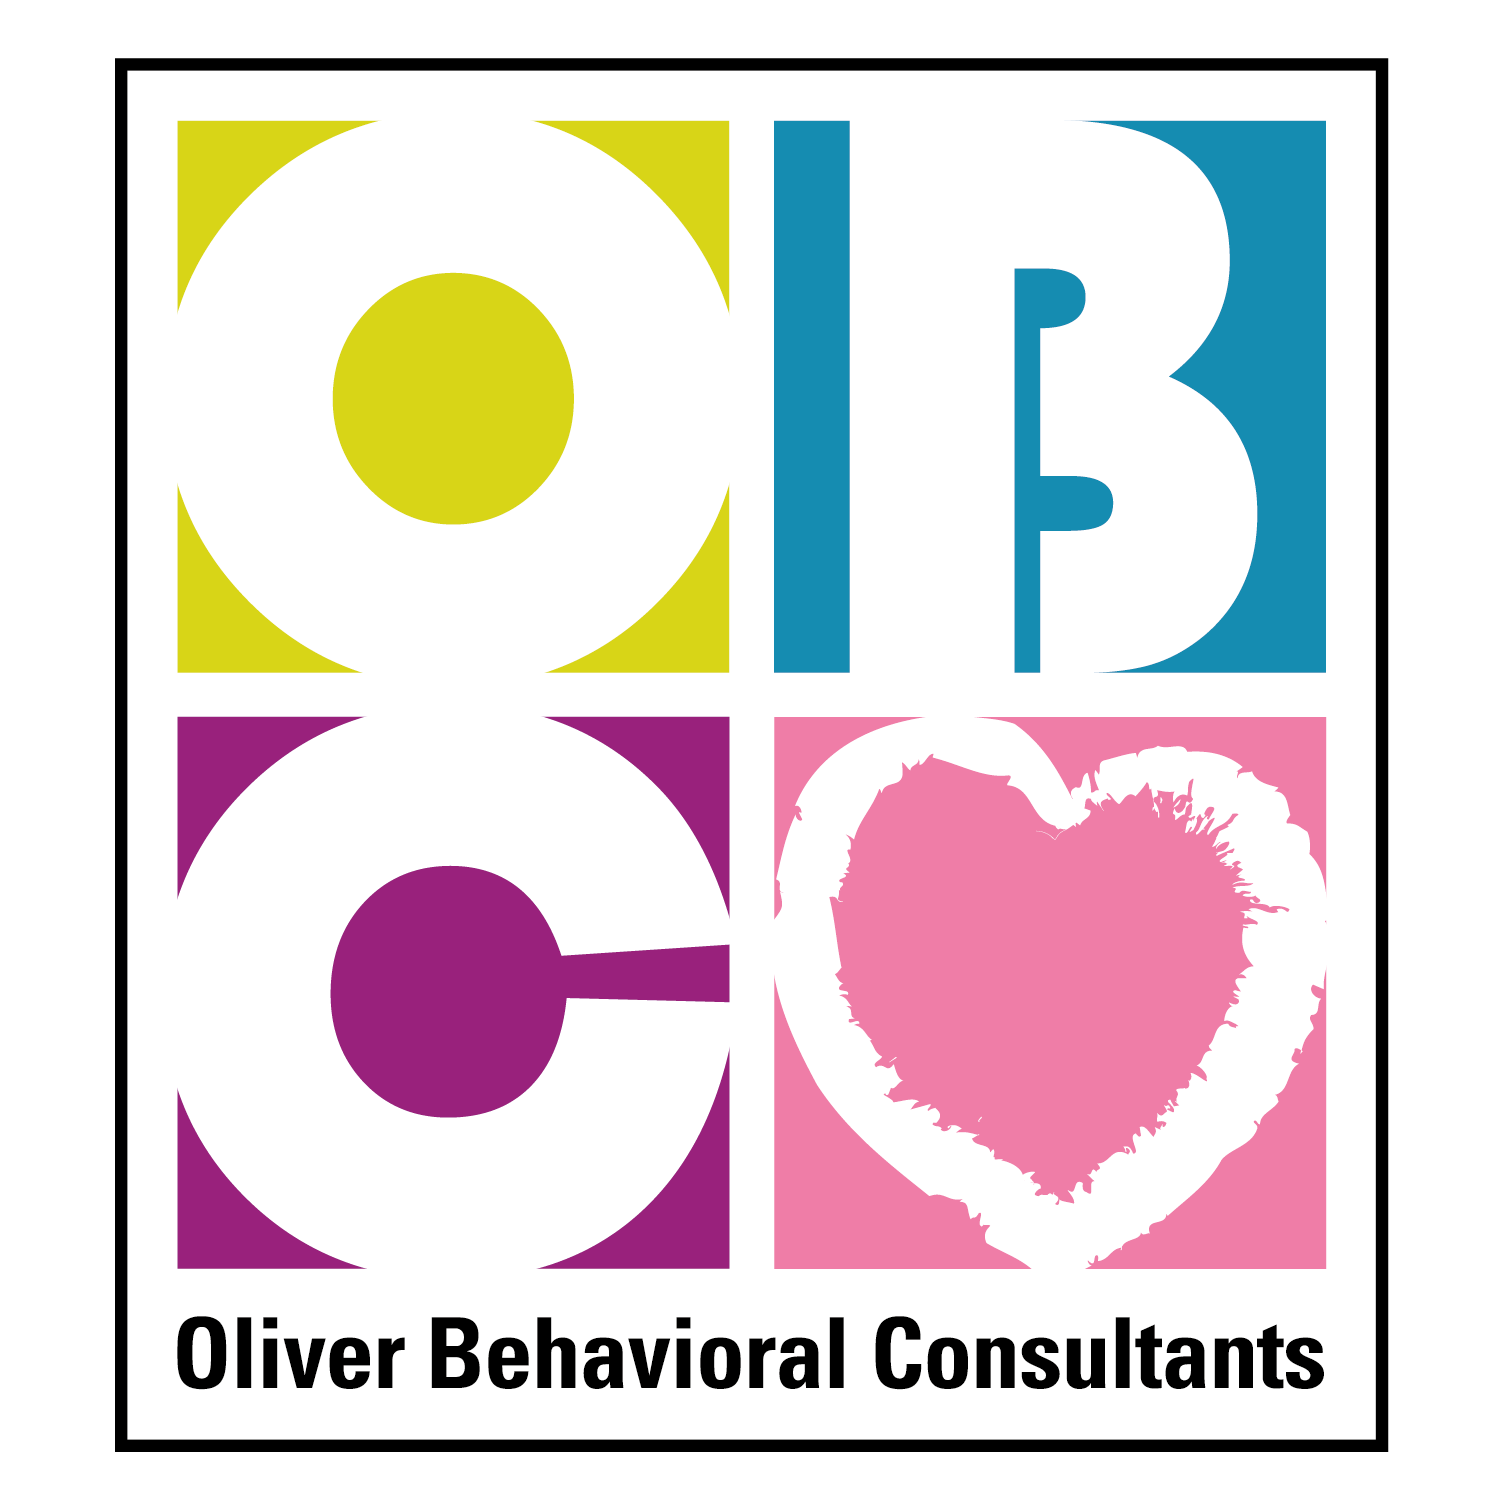 Oliver Behavioral Consultants - Our mission is to provide interventions resulting in positive goal-focused outcomes, and improved quality of life for our clients, their families and communities.Oliver Behavioral Consultants' team of well-trained therapists employ a multidisciplinary approach considering each client's unique needs to deliver function-based treatment strategies resulting in well-rounded intervention protocols.